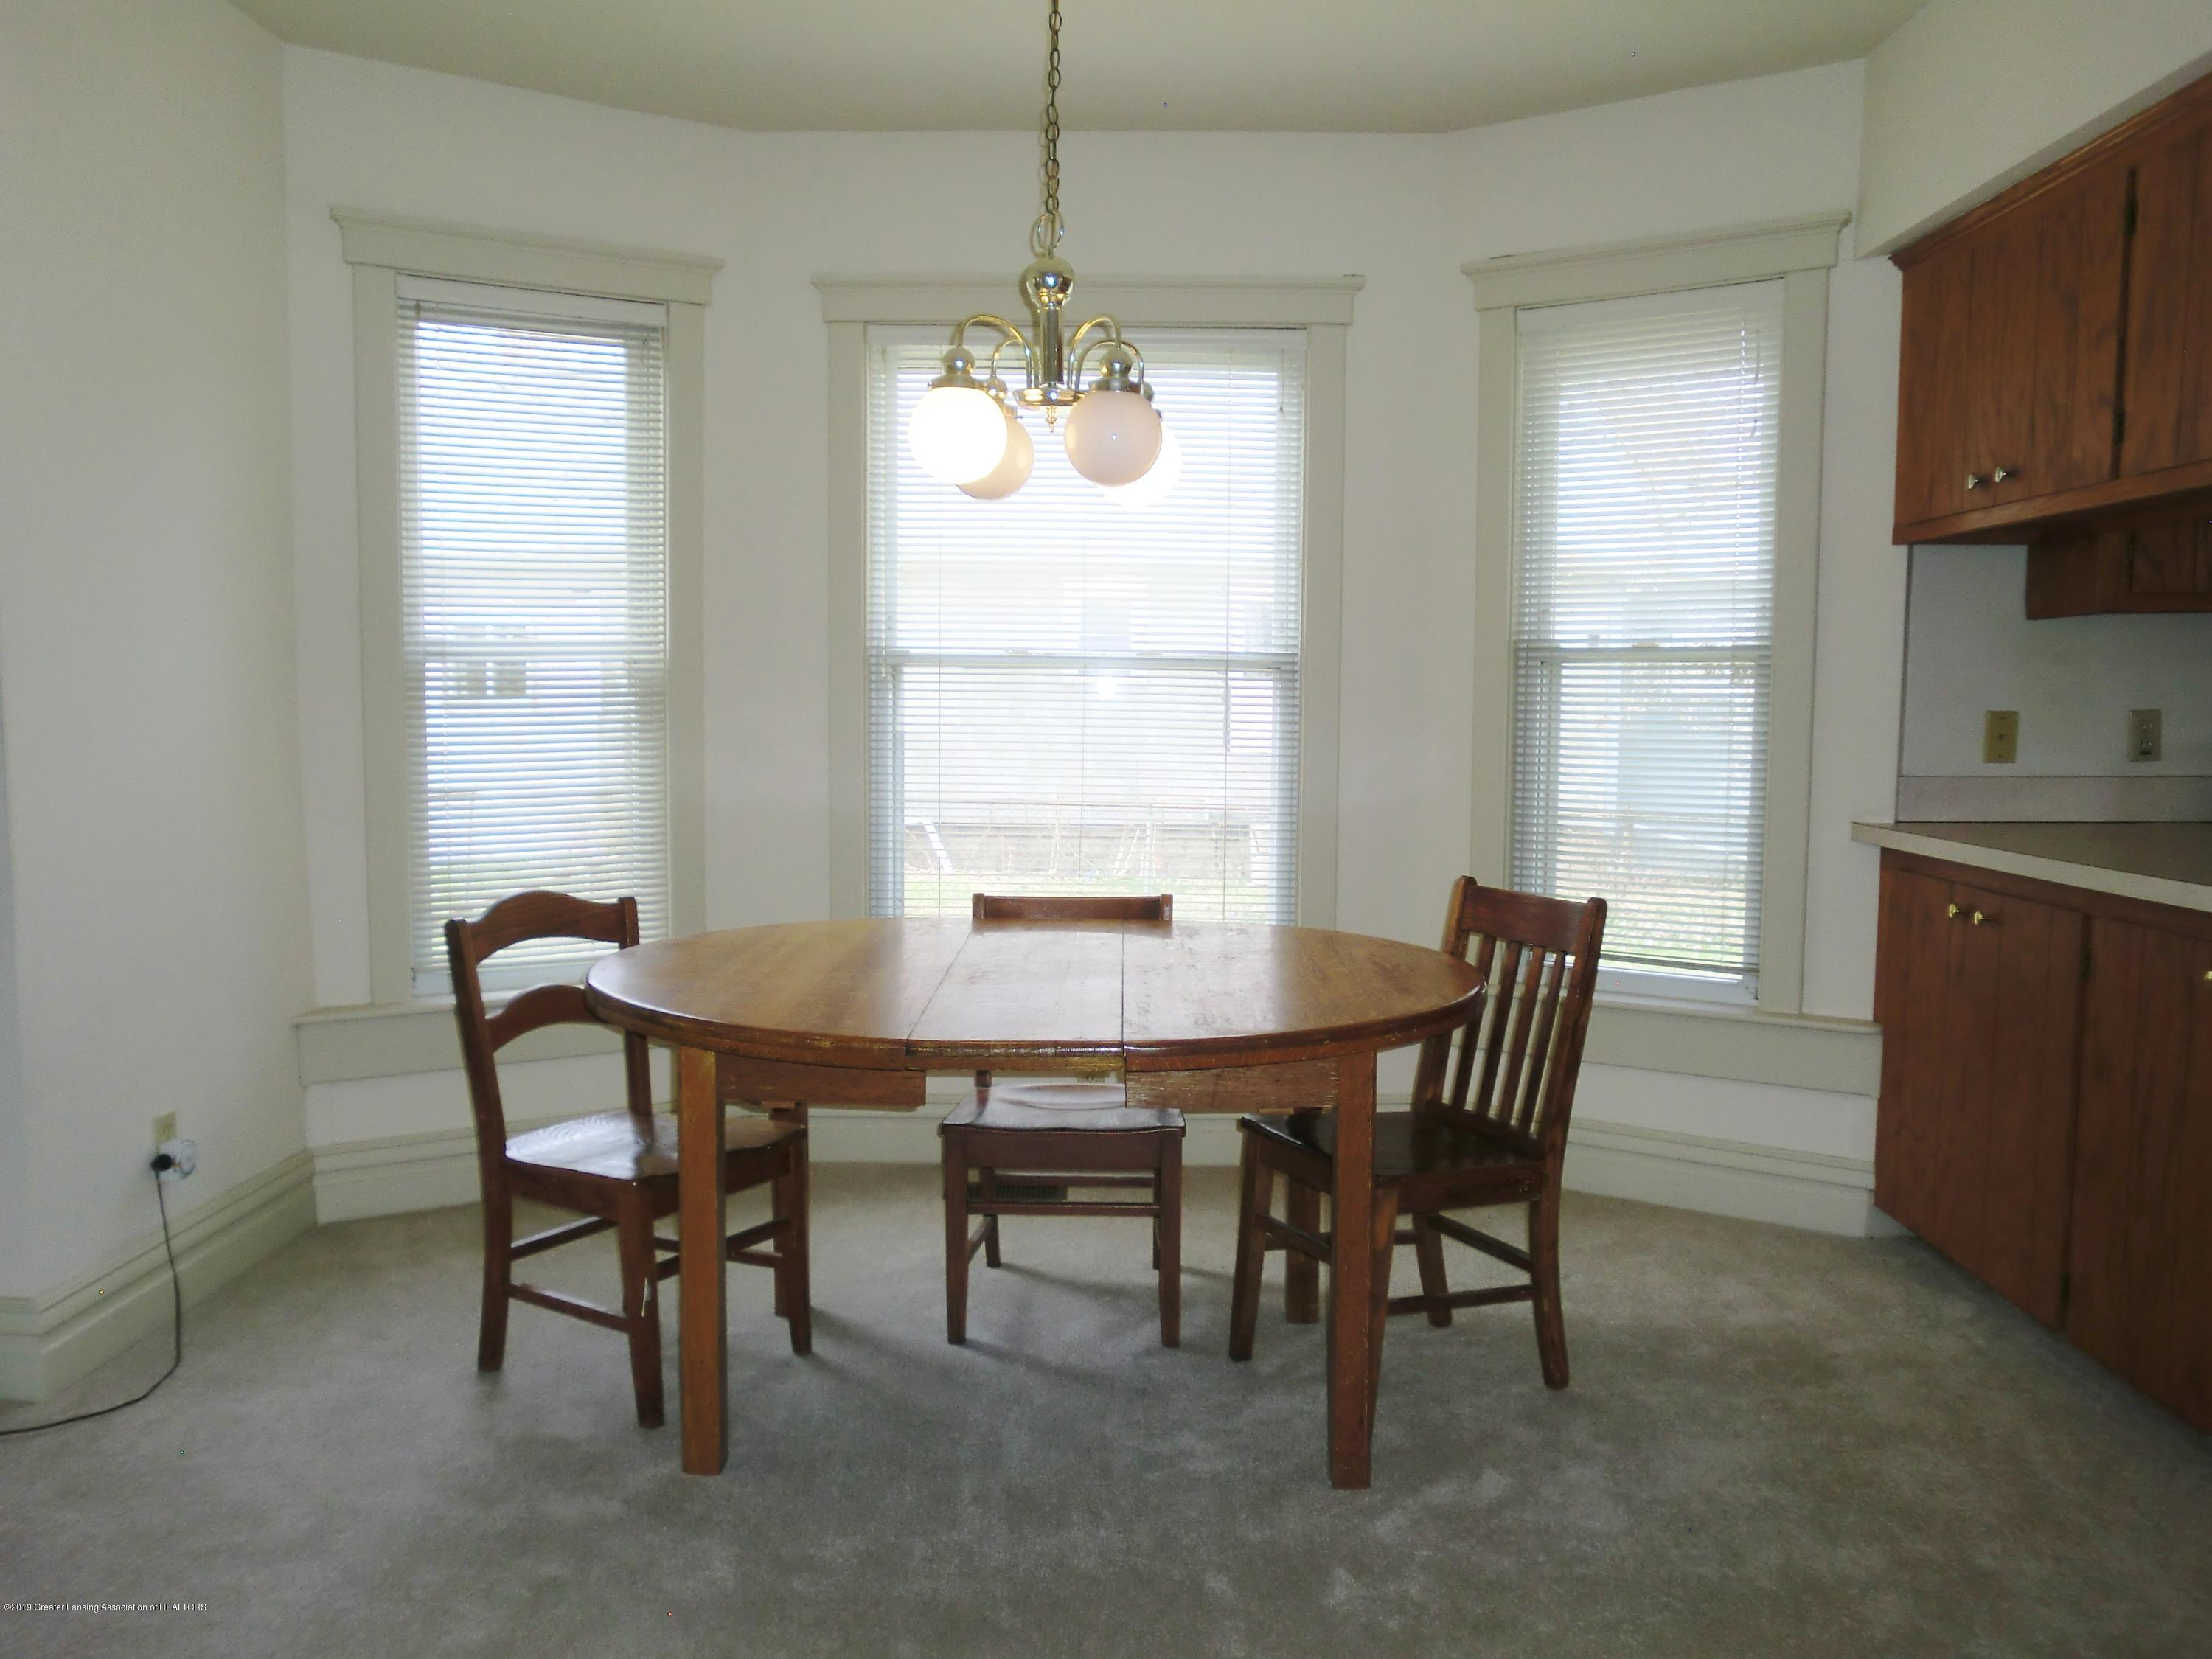 111 E Dwight St - Dining Area - 12